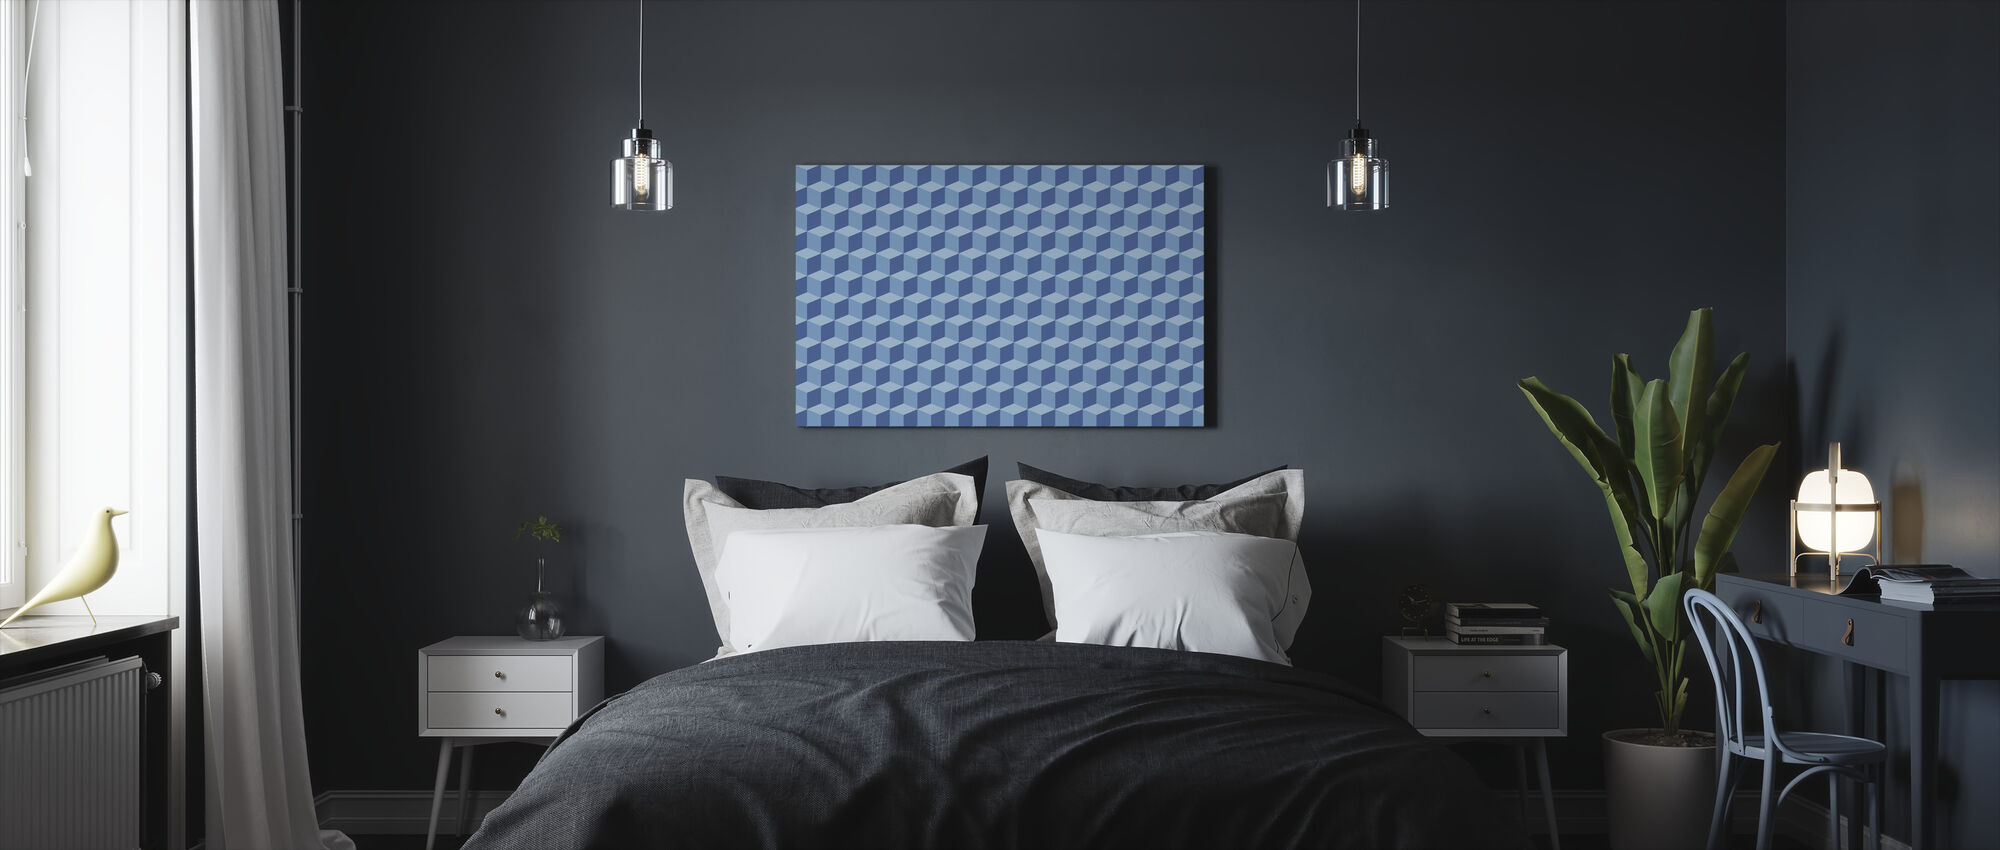 Wall of Boxes - Canvas print - Bedroom